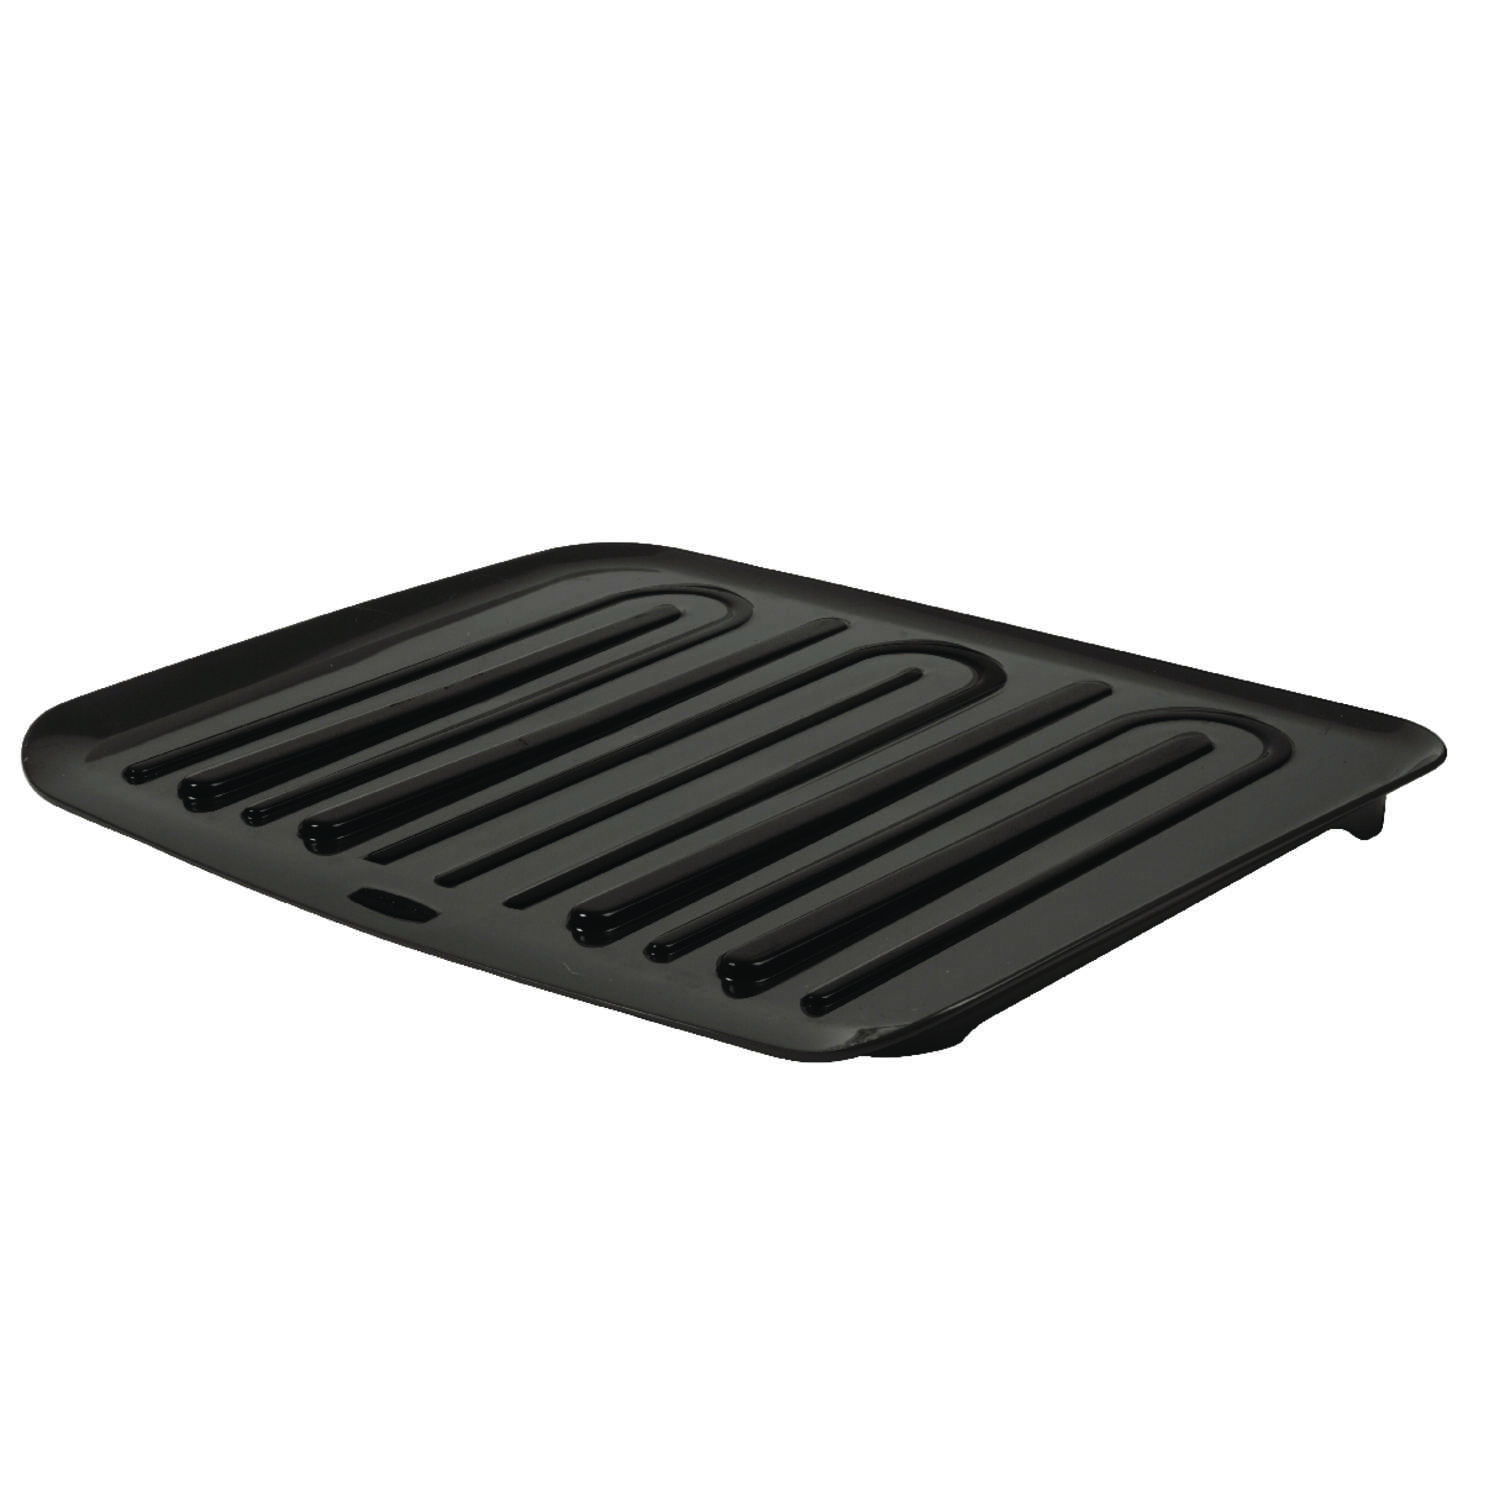 Rubbermaid 18 in. L x 14.8 in. W x 1.3 in. H Black Plastic Dish Drainer